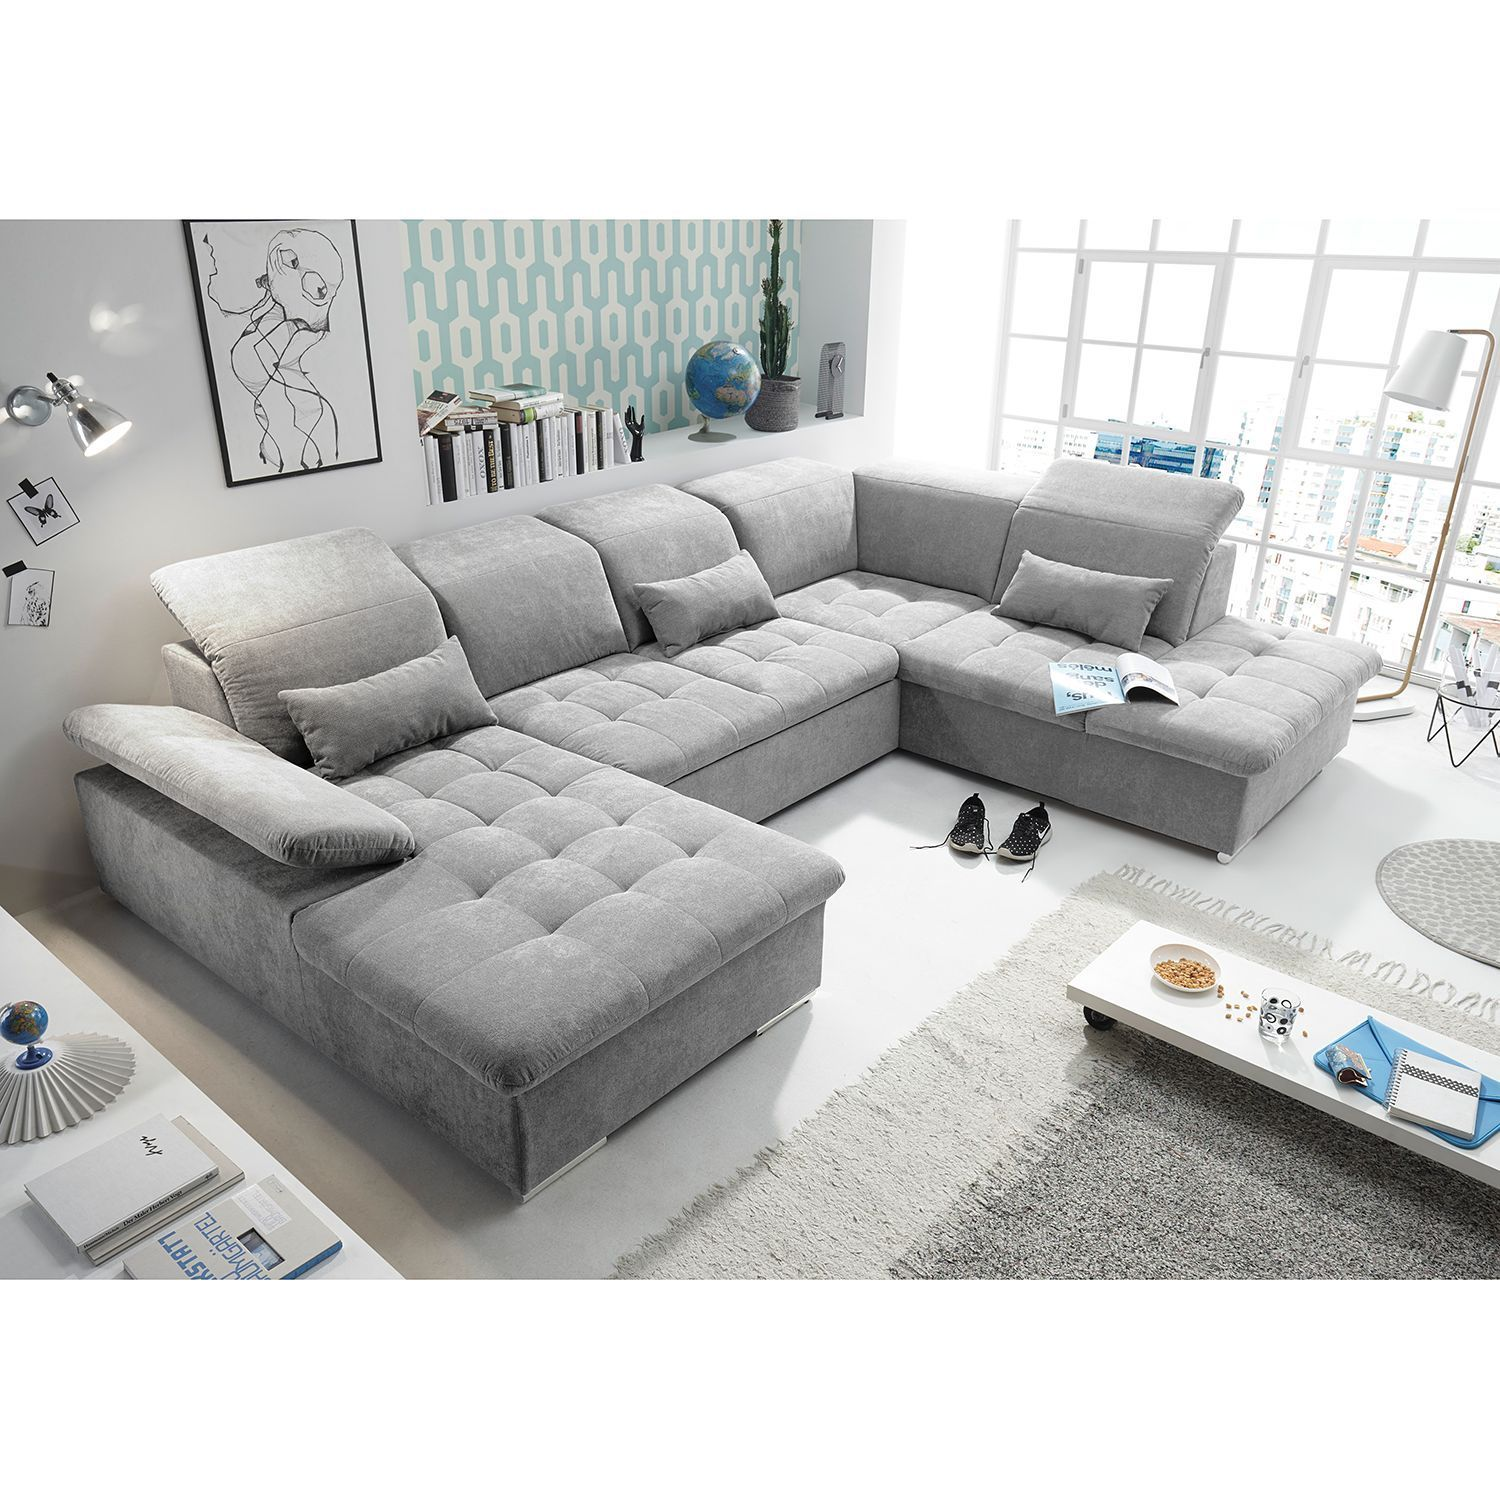 Wohnlandschaften Xxl Bigsofas In U Form Online Bestellen Neuedekoration Wohnlandschaft San Benito Big Sofas Furniture Living Room Entertainment